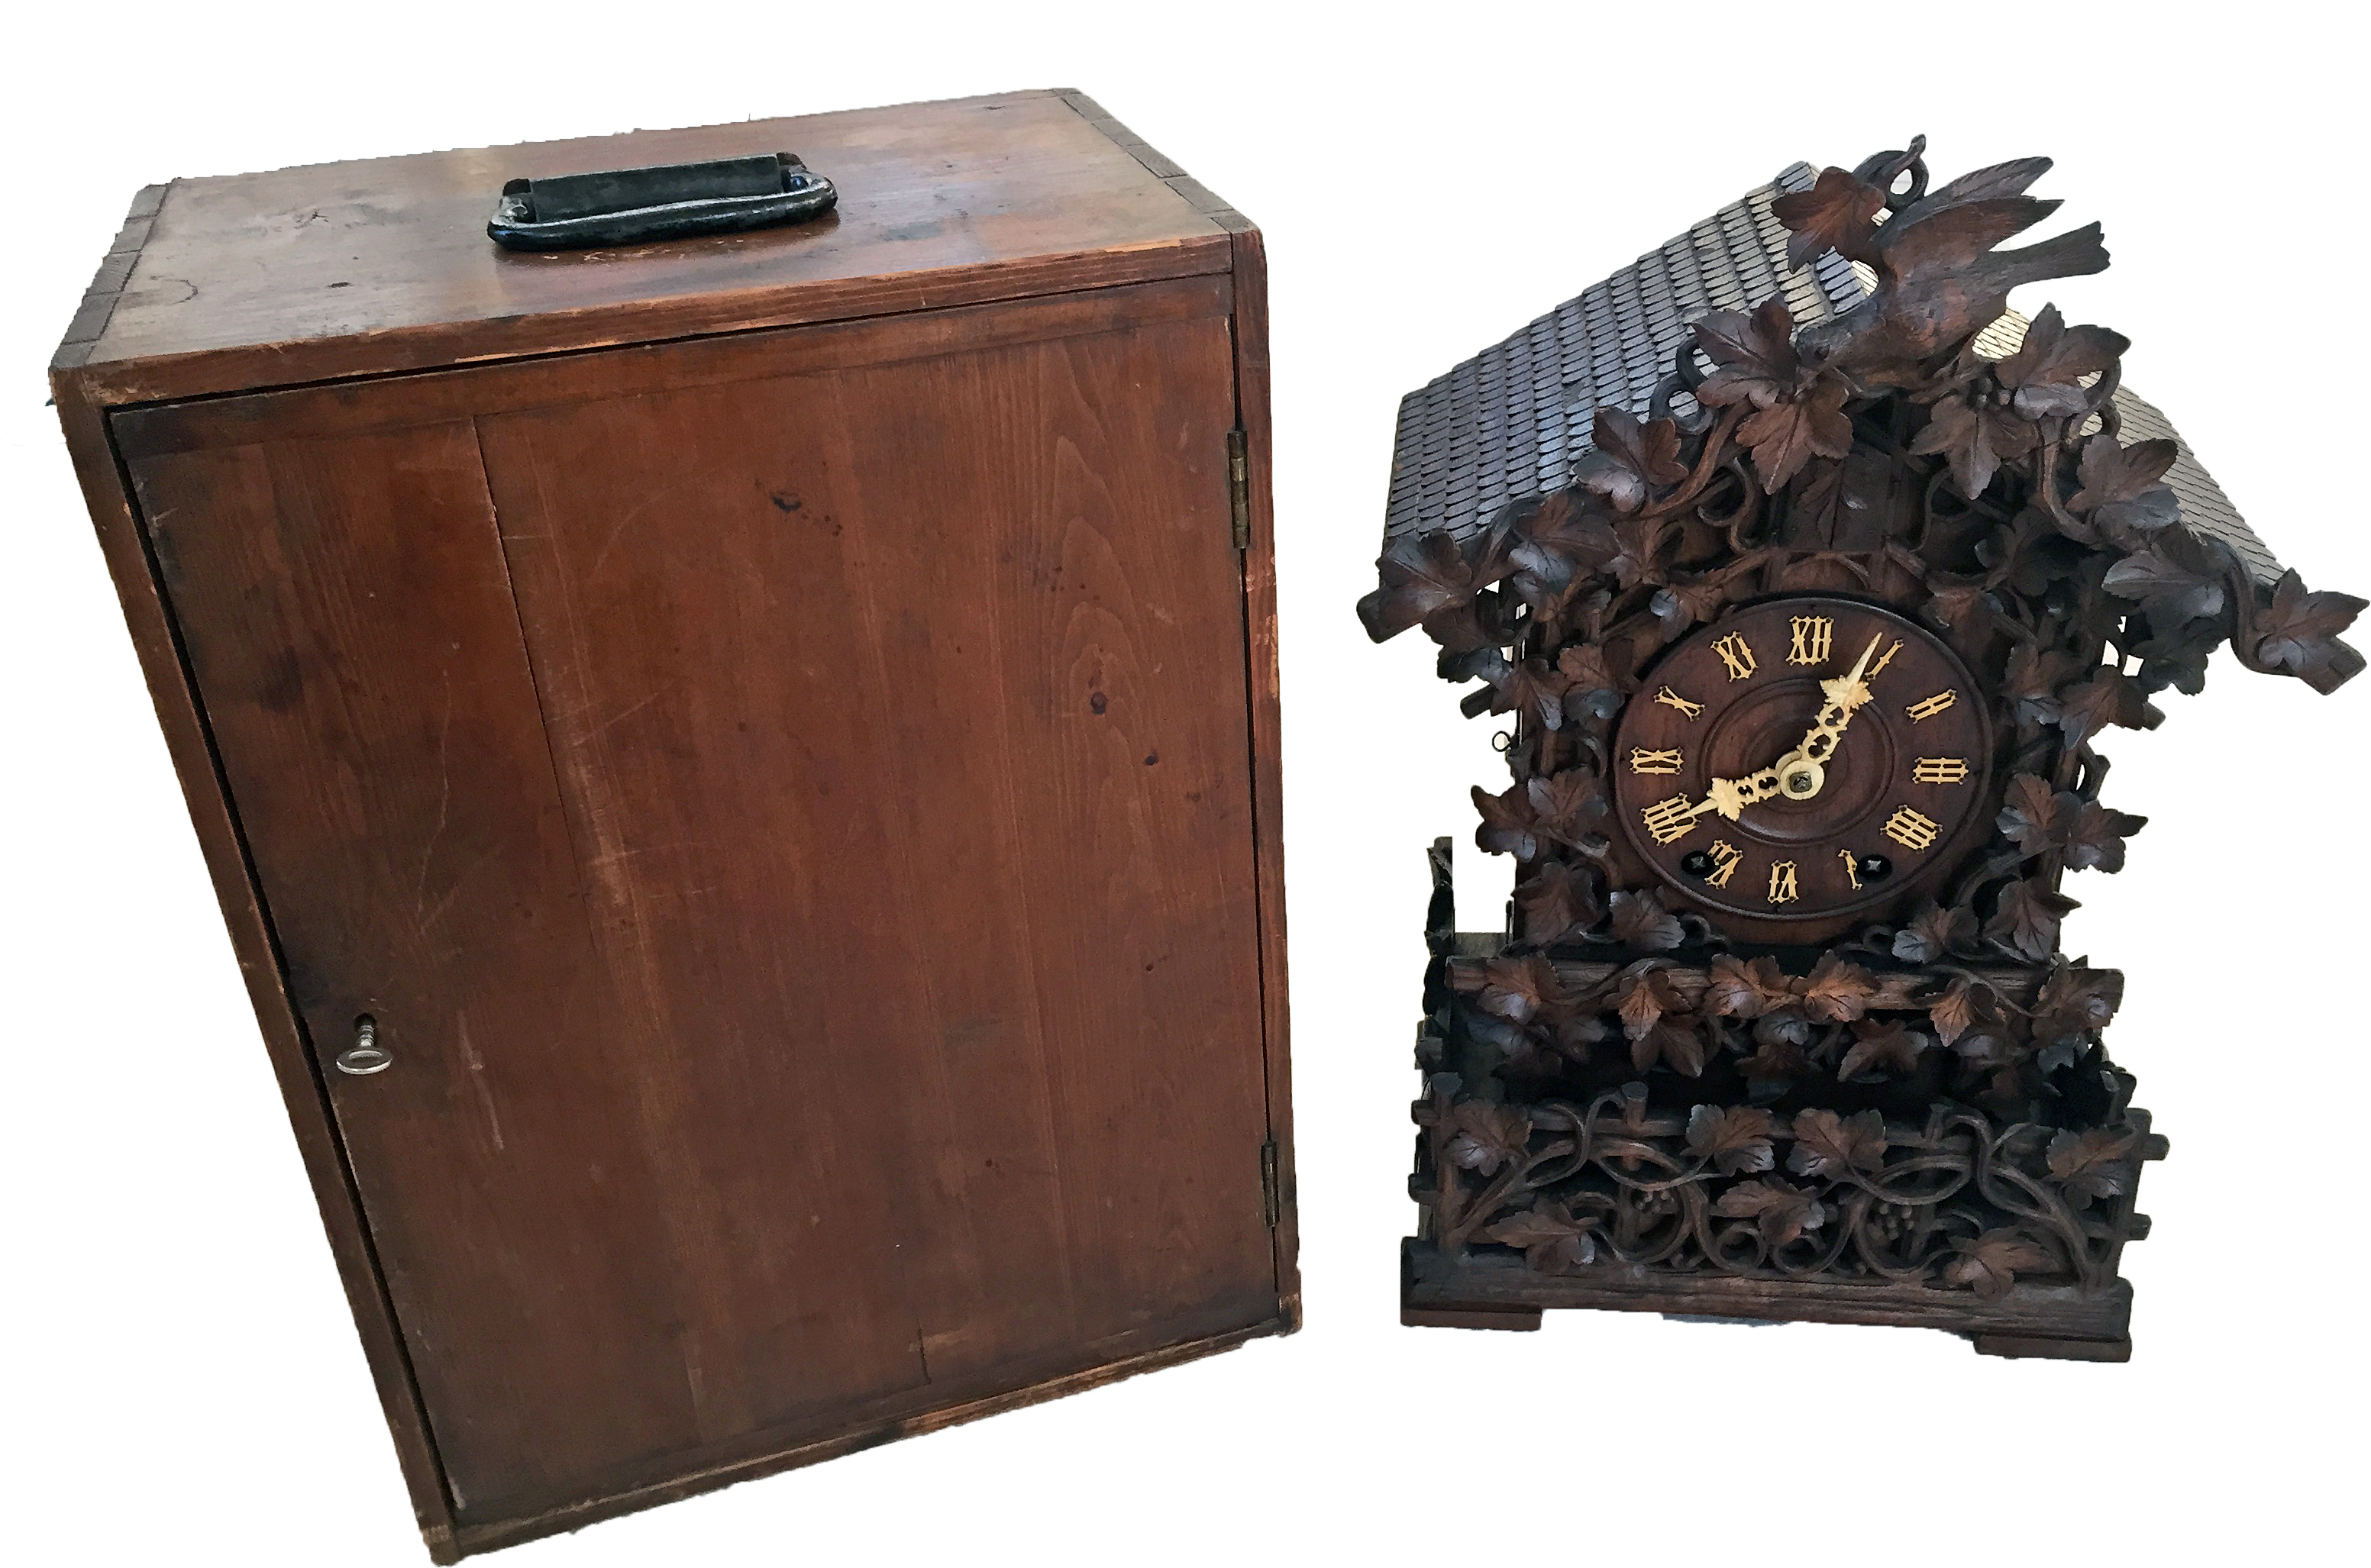 Cuckoo Clock and Case, Ketterer